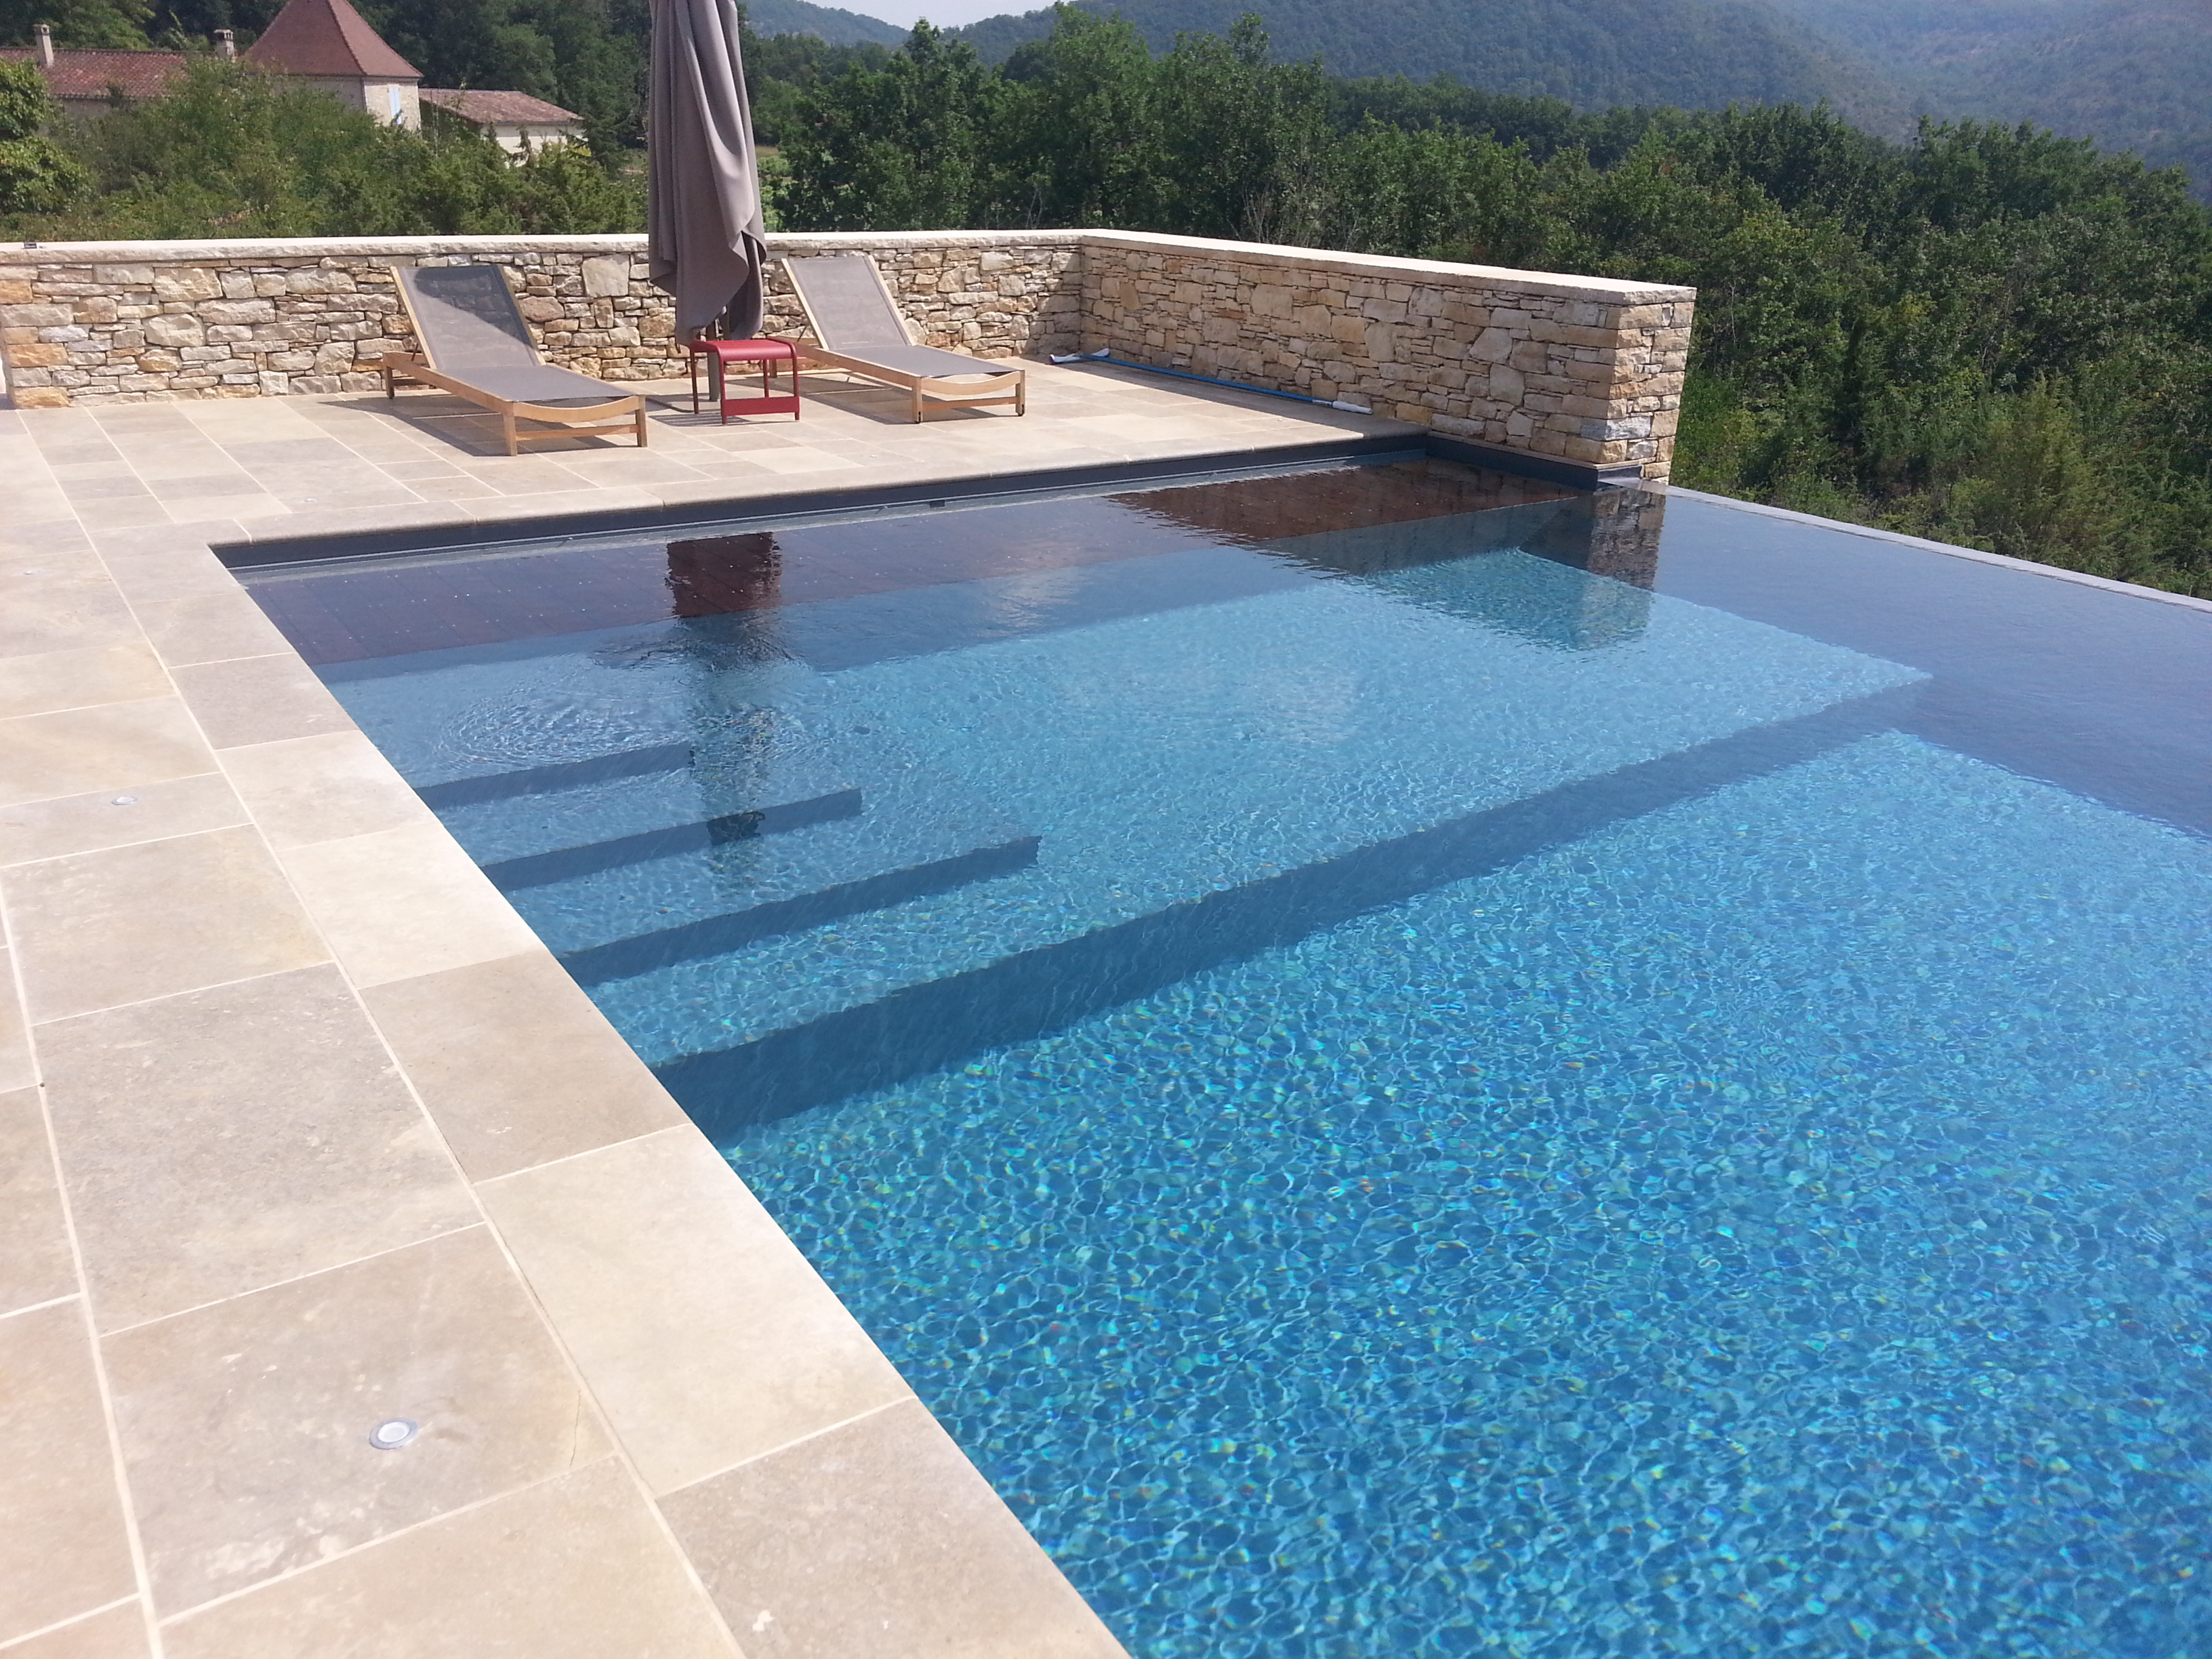 Piscine everblue everblue l inspiration la petite for Piscine miroir design